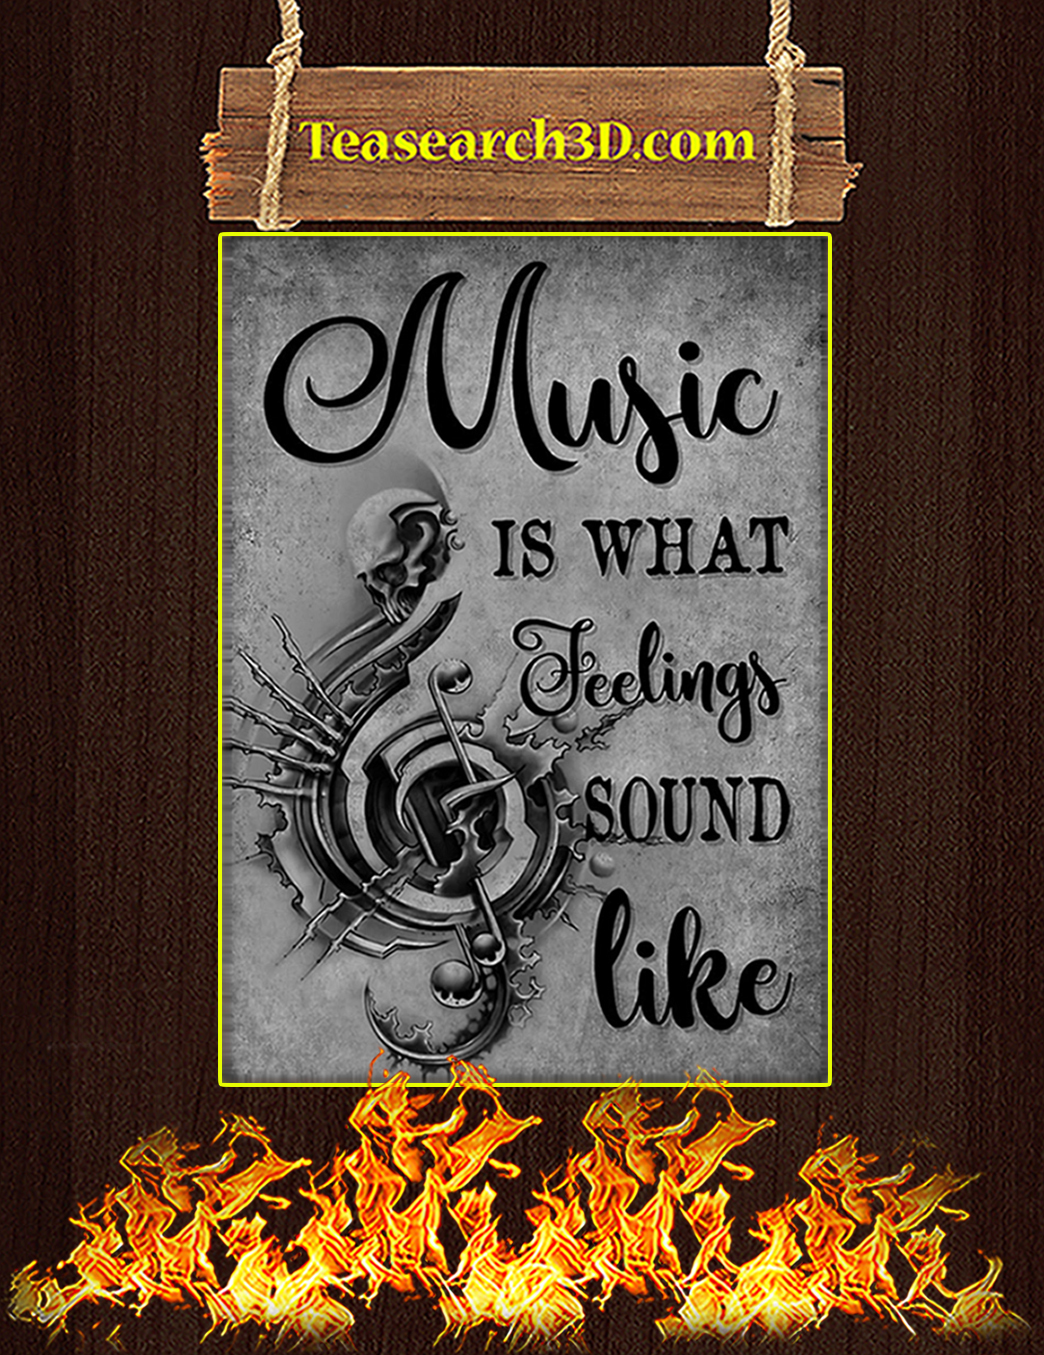 Music is what feeling sound like poster A1